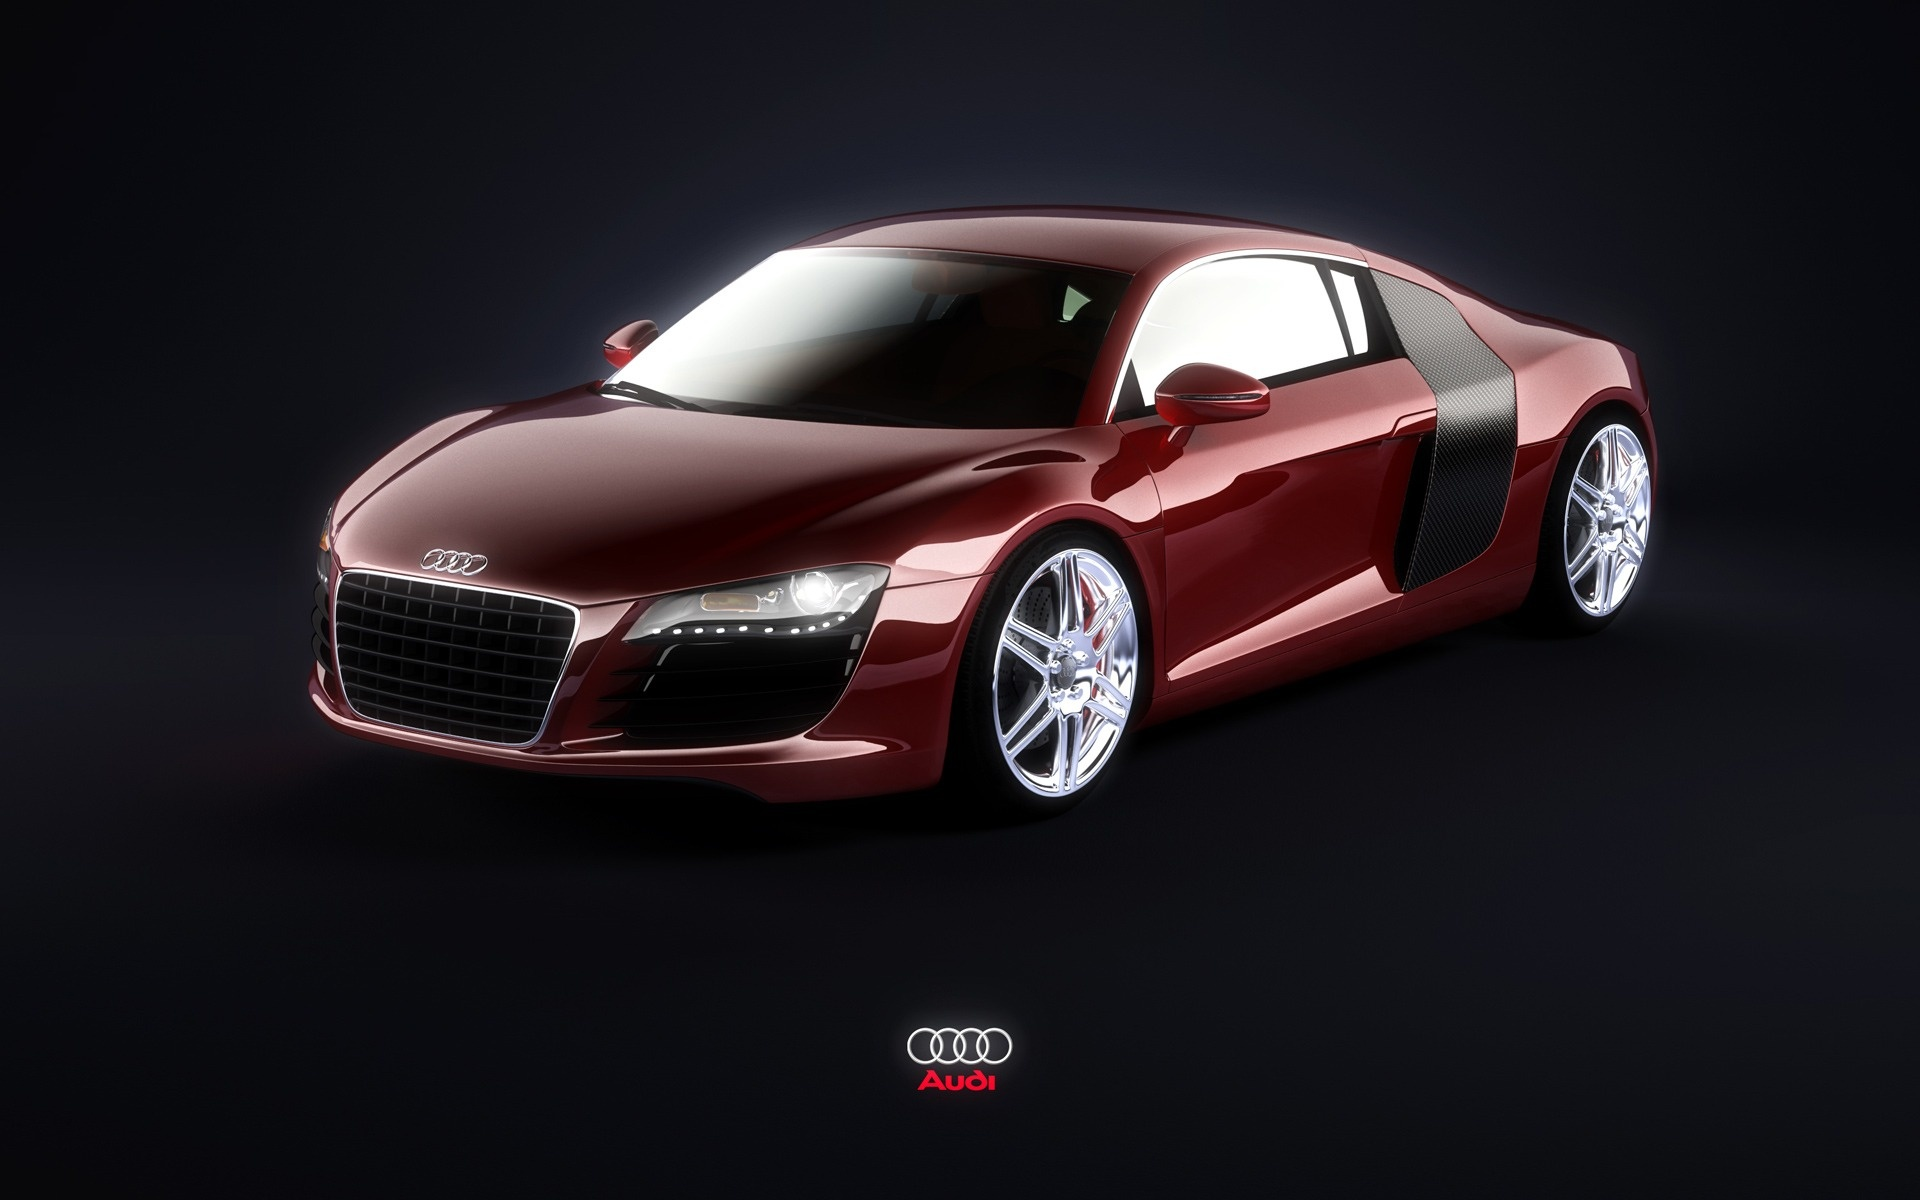 Audi A8 red #1